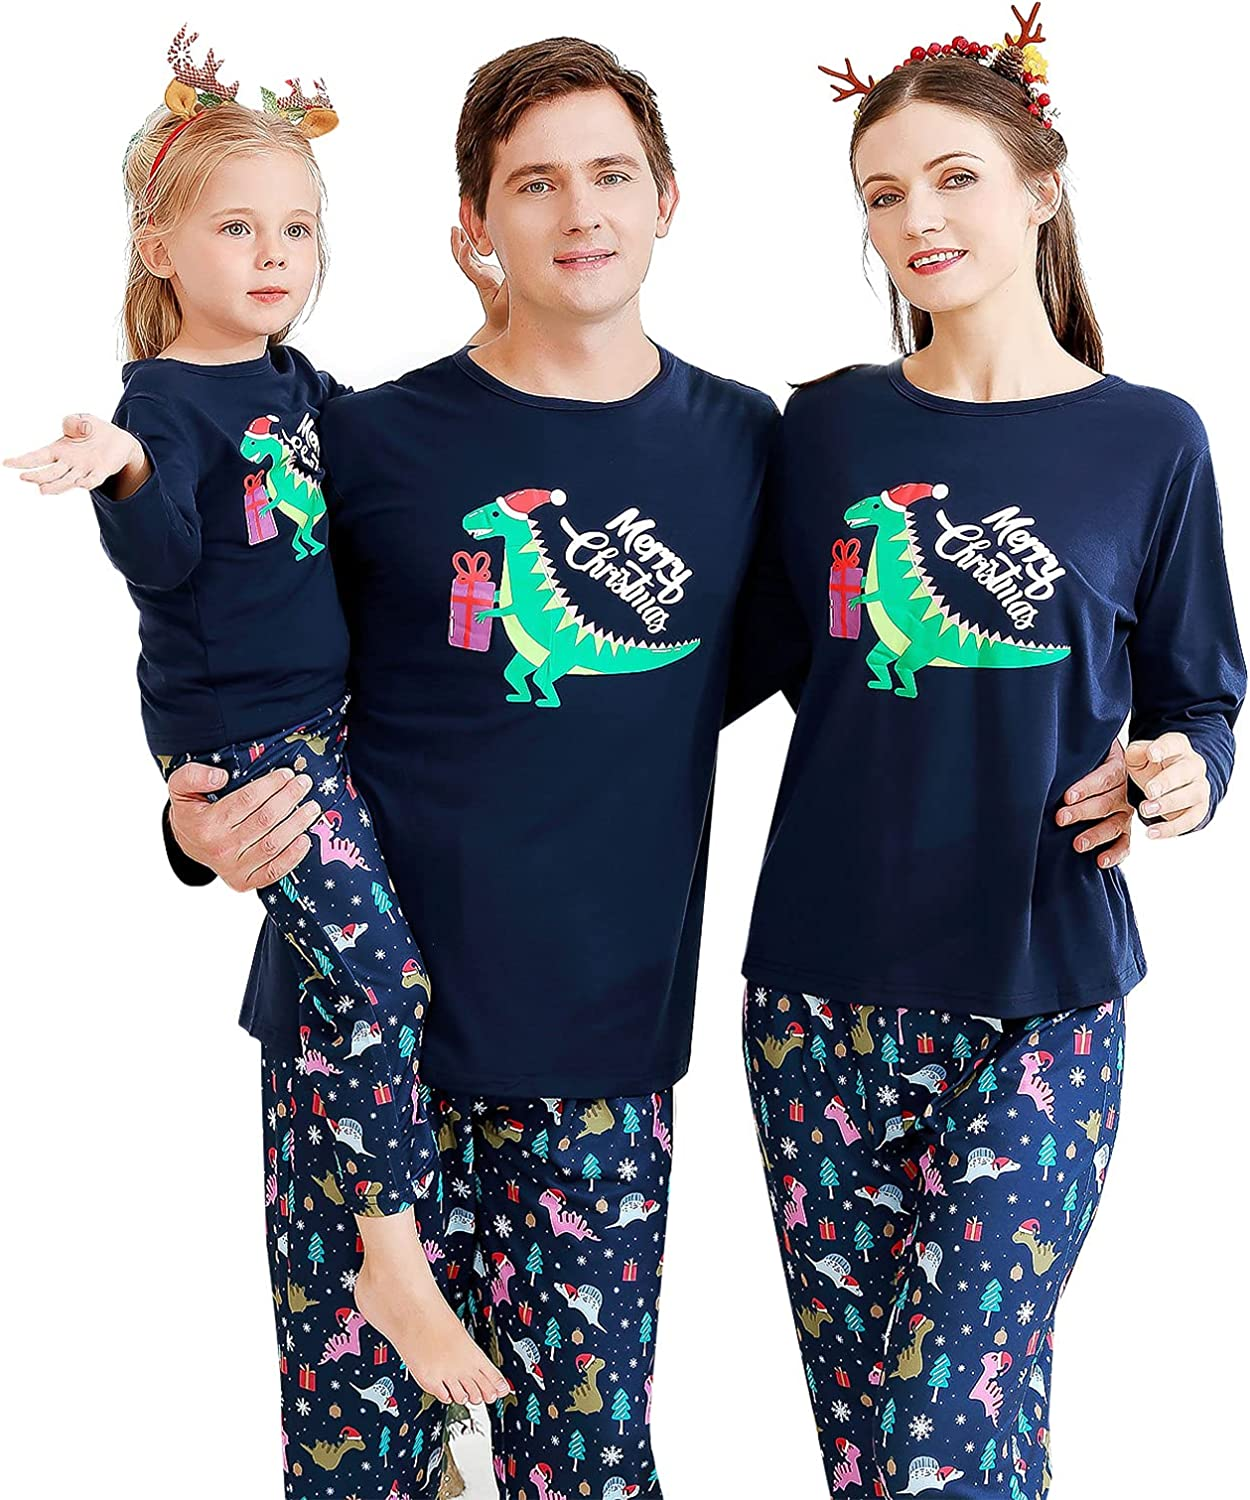 SVTEOKO Christmas family matching outfits,family outfits matching sets